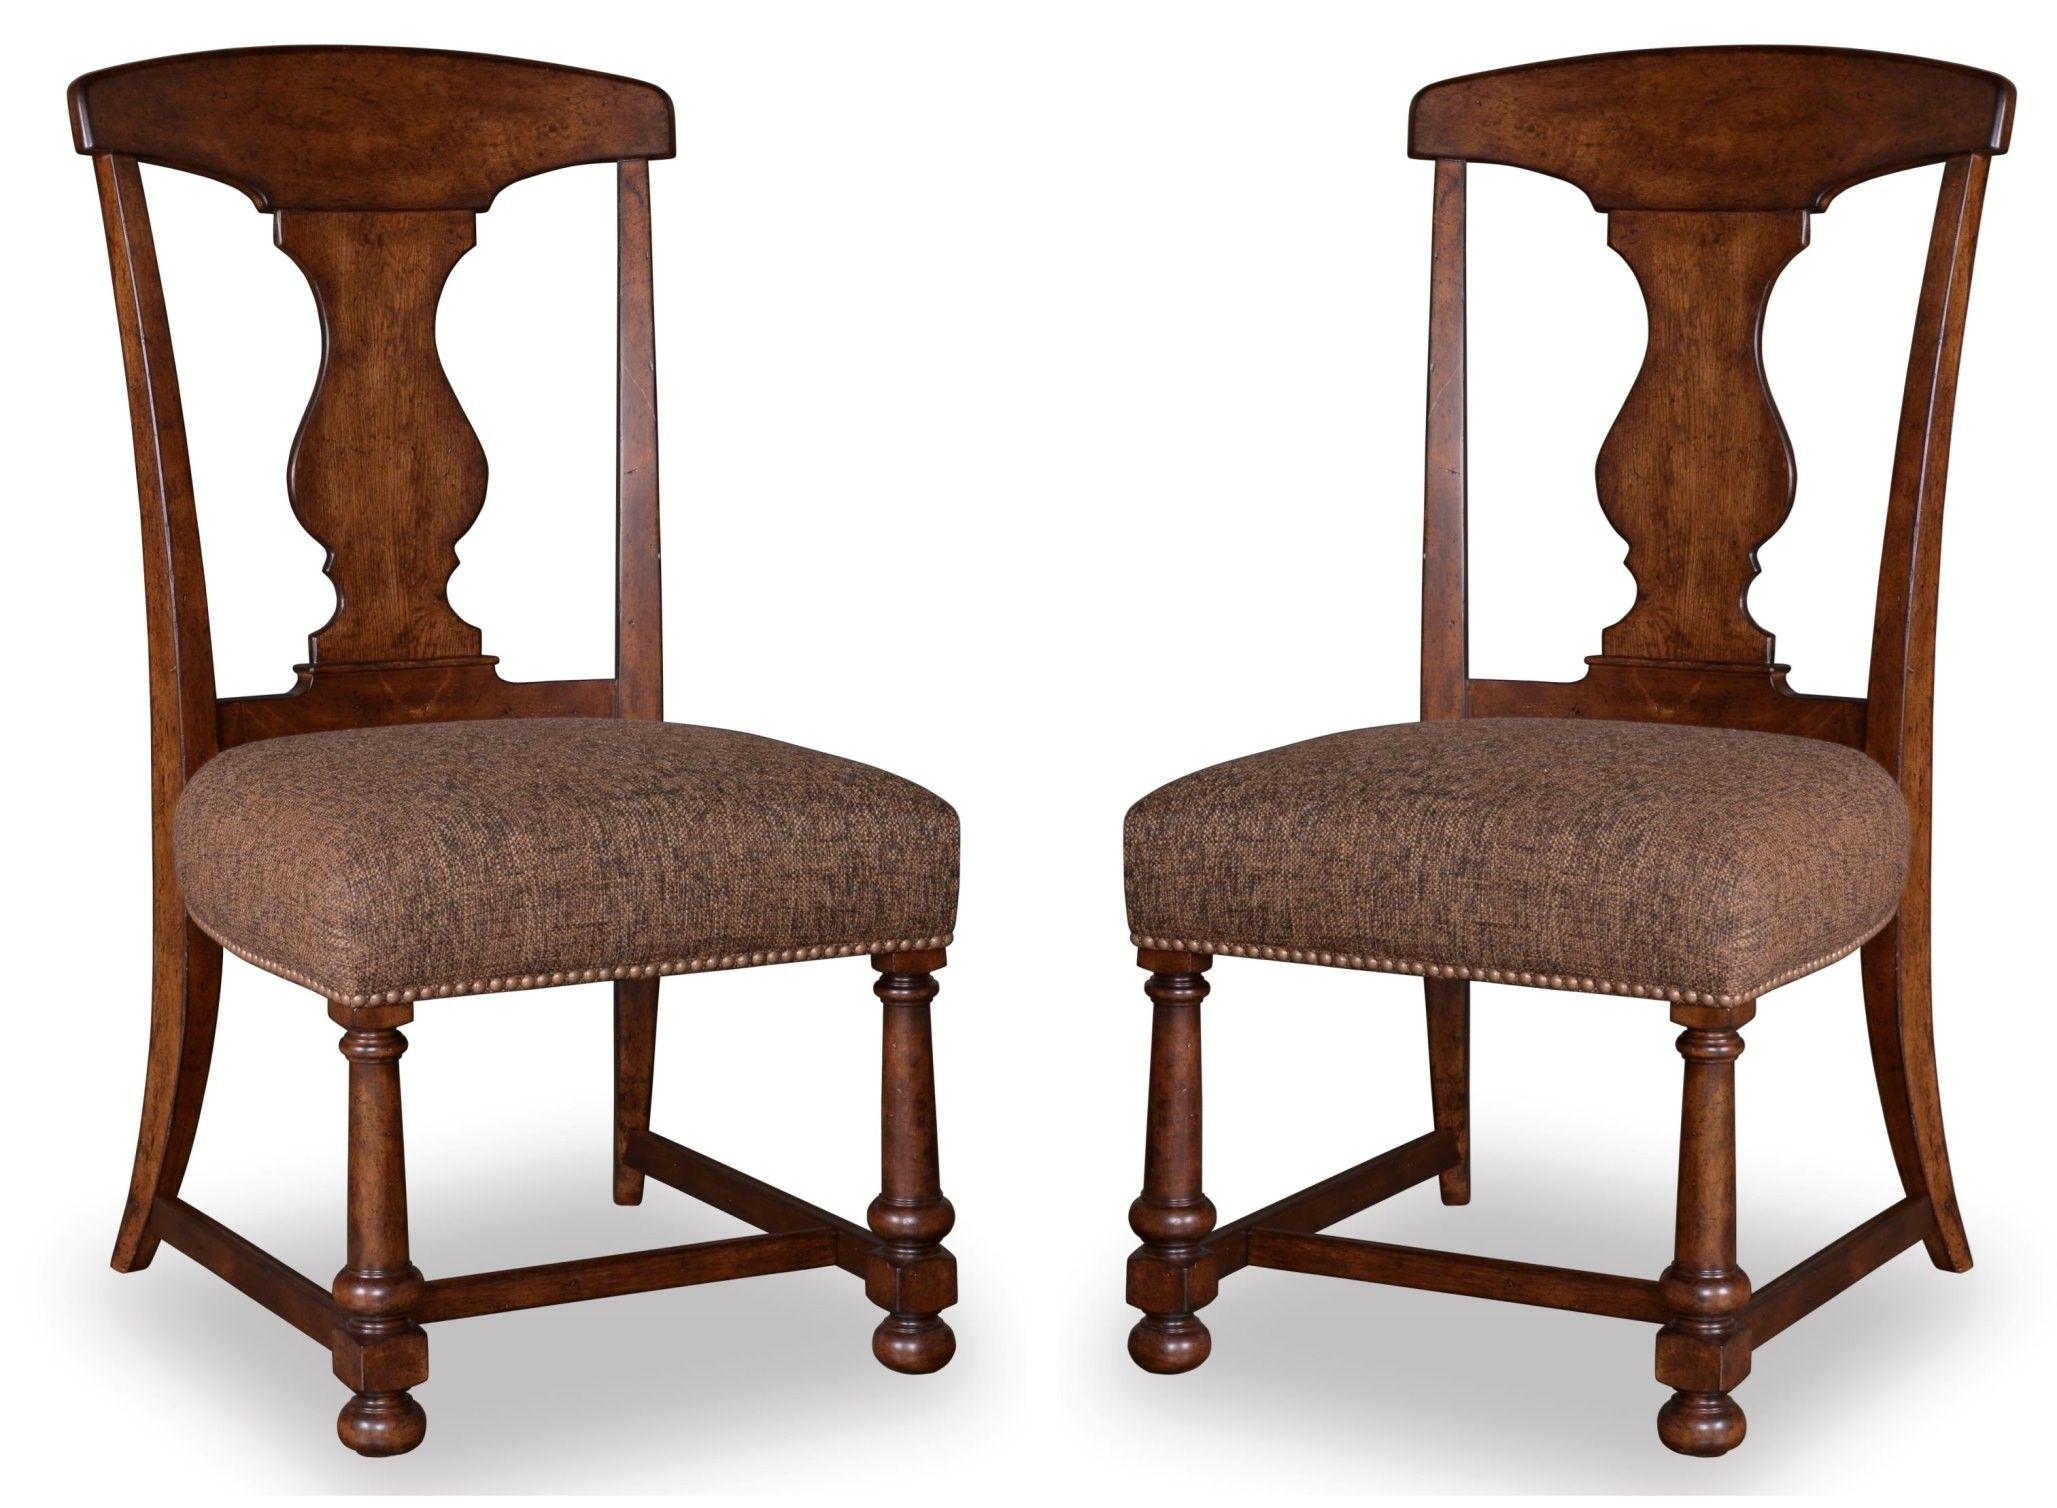 barrel dining chairs set of 2 single couch chair cover whiskey oak splat back side from art